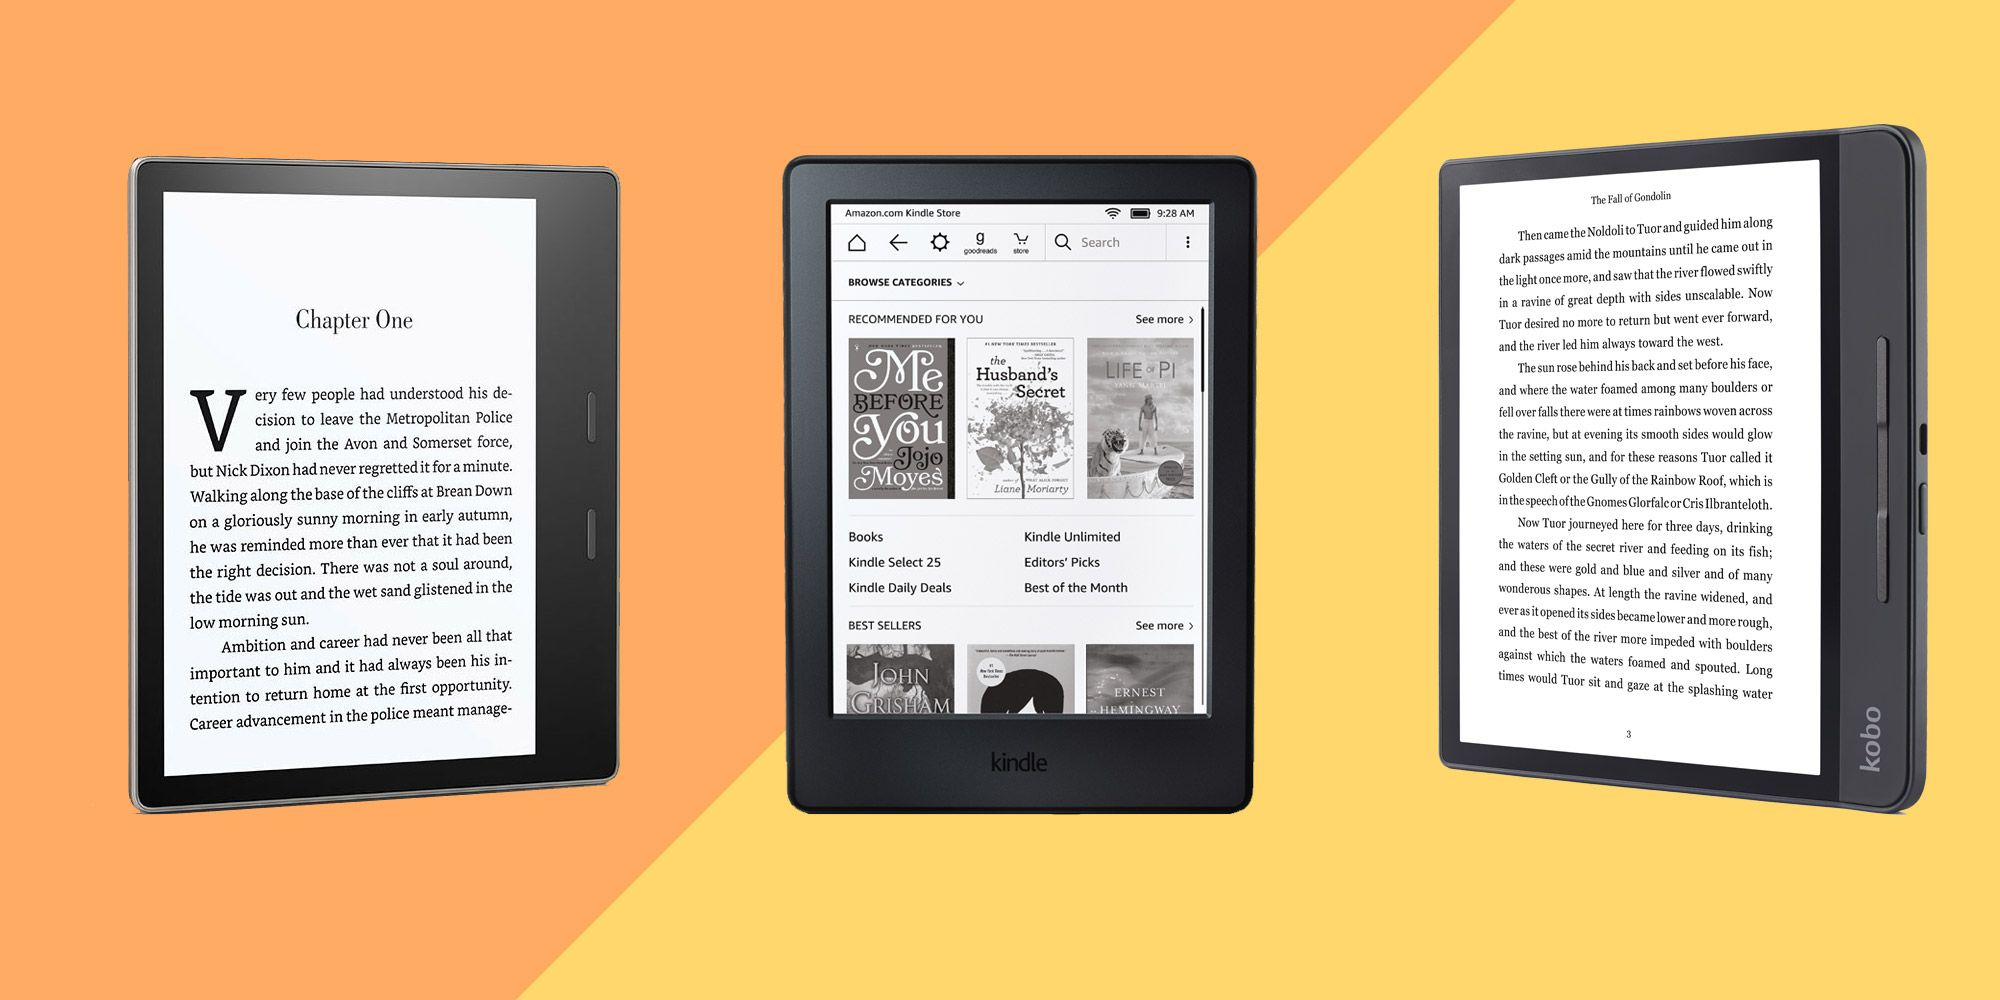 The best e-readers you can buy - is Amazon Kindle the best e